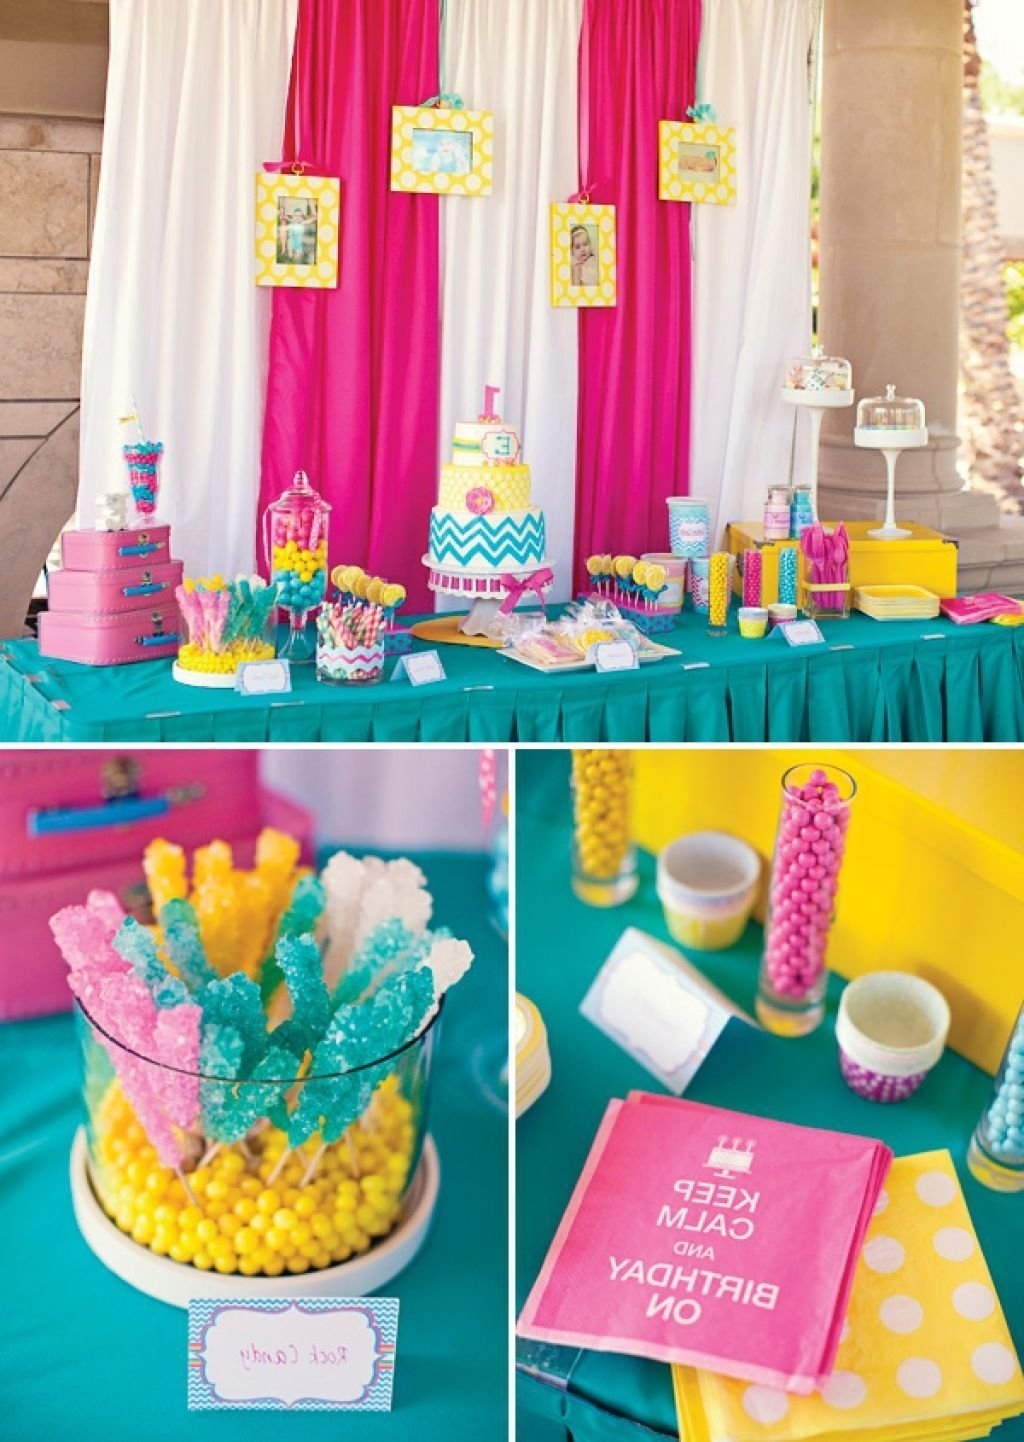 10 Perfect One Year Old Birthday Party Ideas outdoor party decorations google search madeline pinterest 48 2020